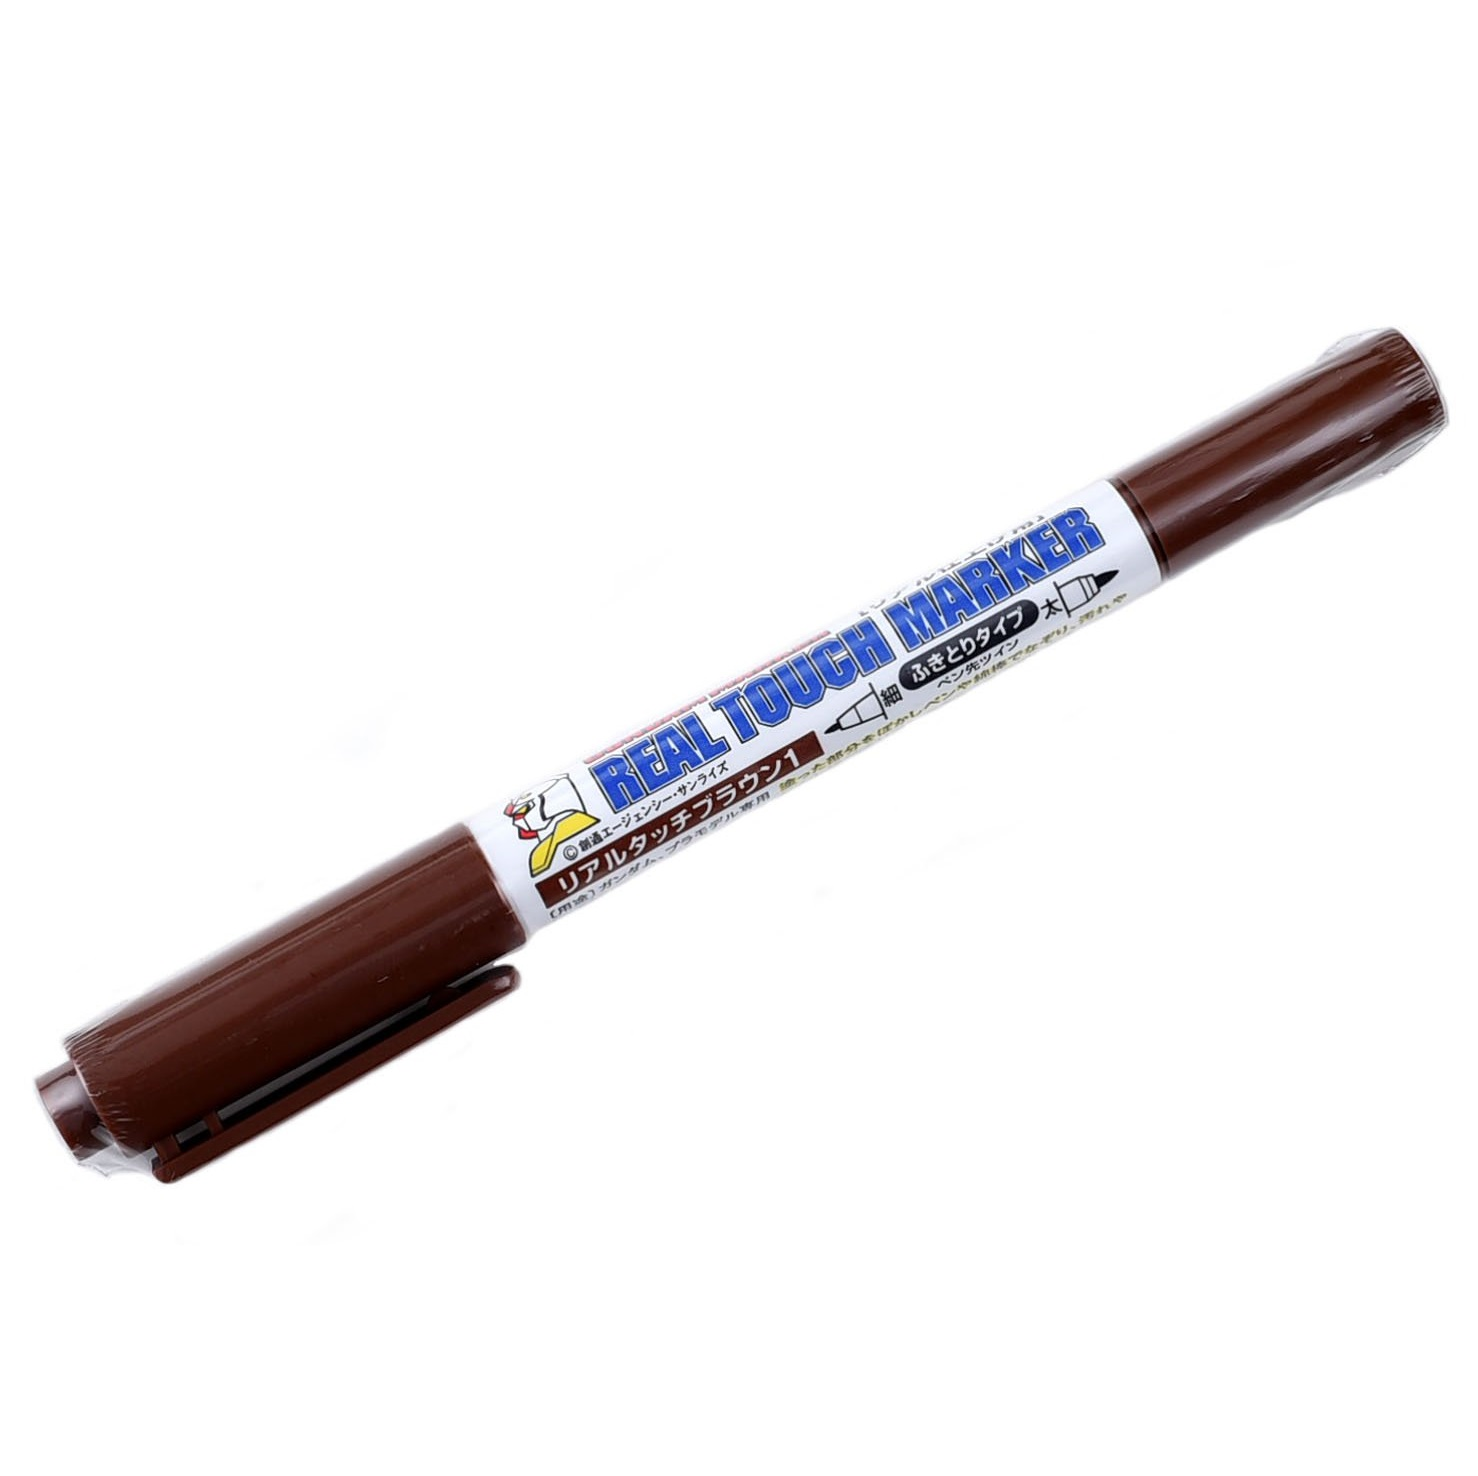 Gundam Marker - Twin Heads Real Touch GM407 (Brown)